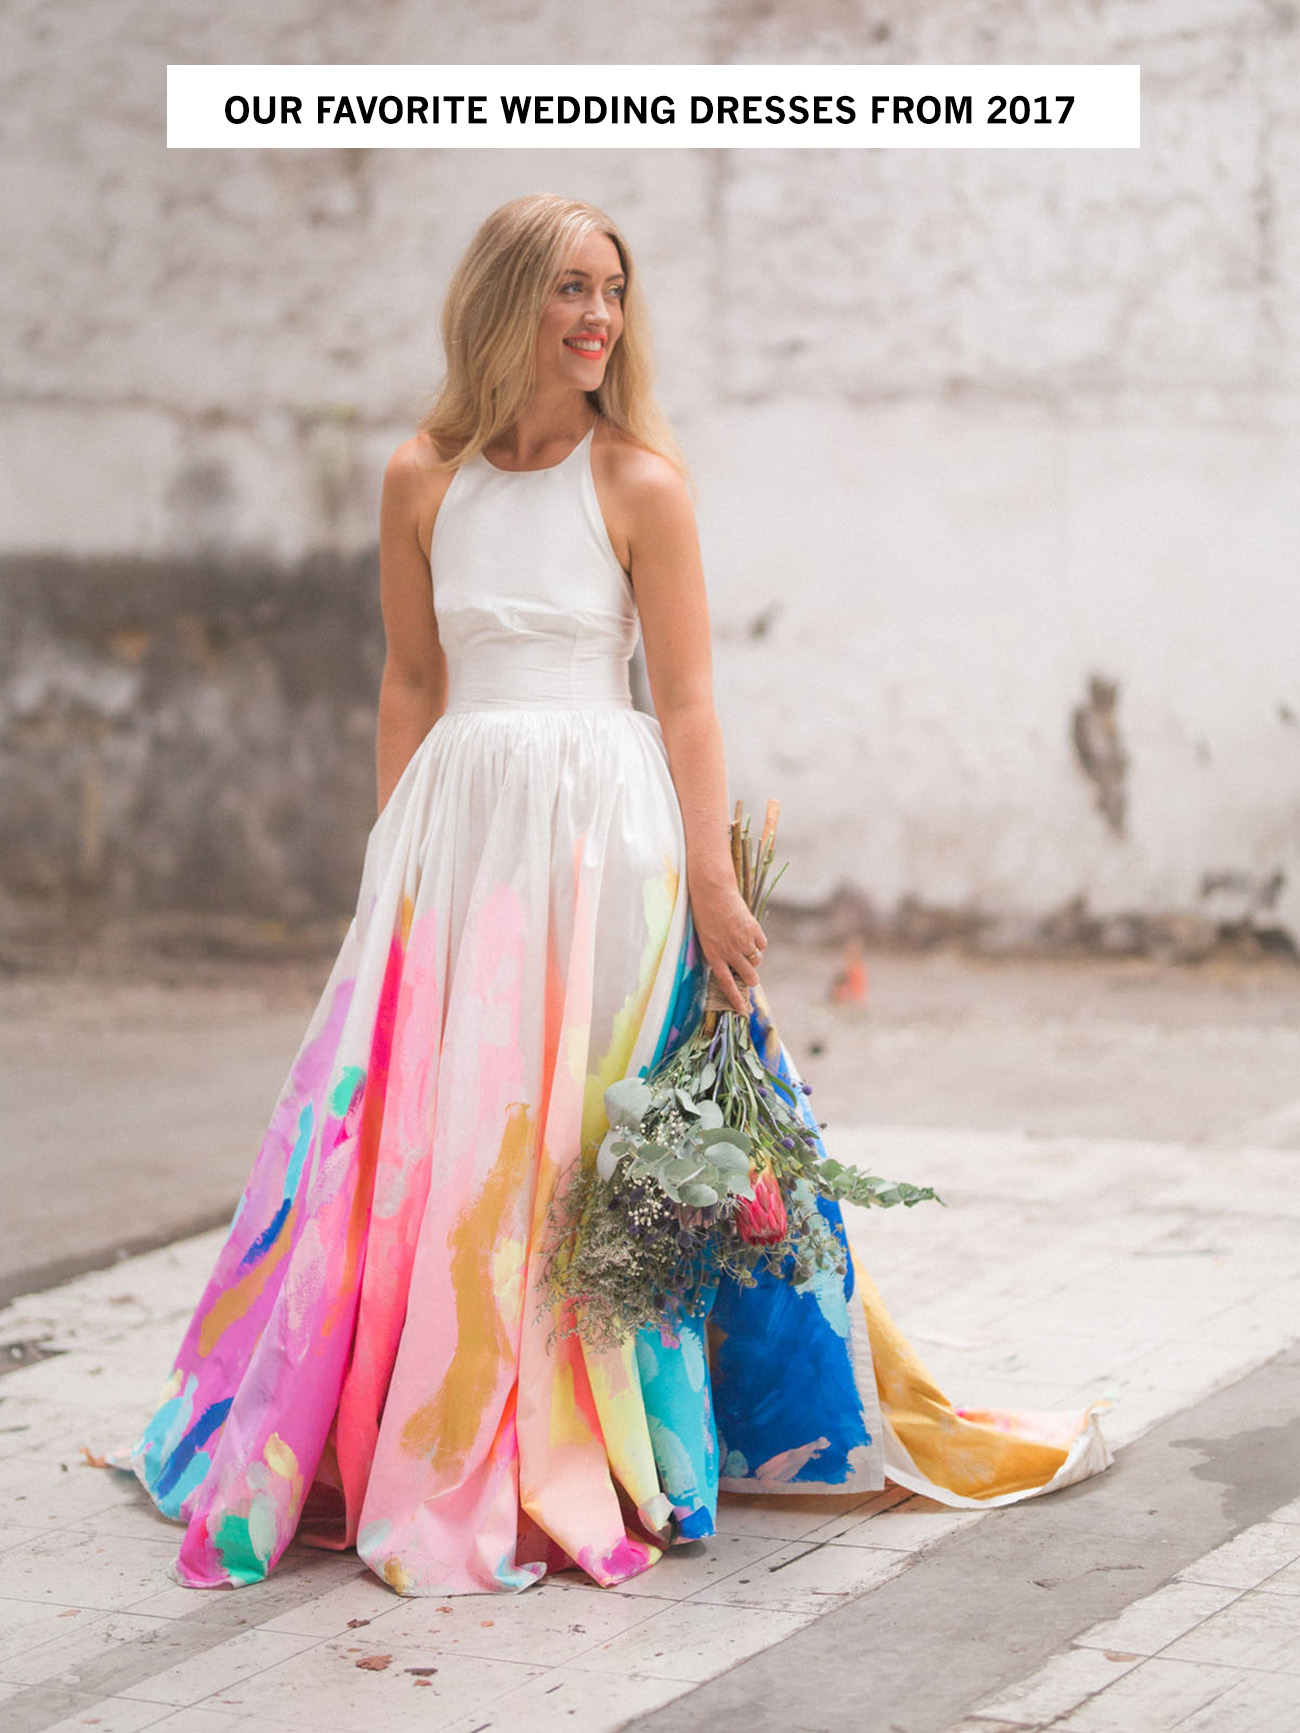 Our favorite wedding dresses from 2017 green wedding shoes from lush tulle skirts intricate lace and illusion necklines to delicate beading and more weve seen a plethora of gorgeous gowns this year junglespirit Choice Image